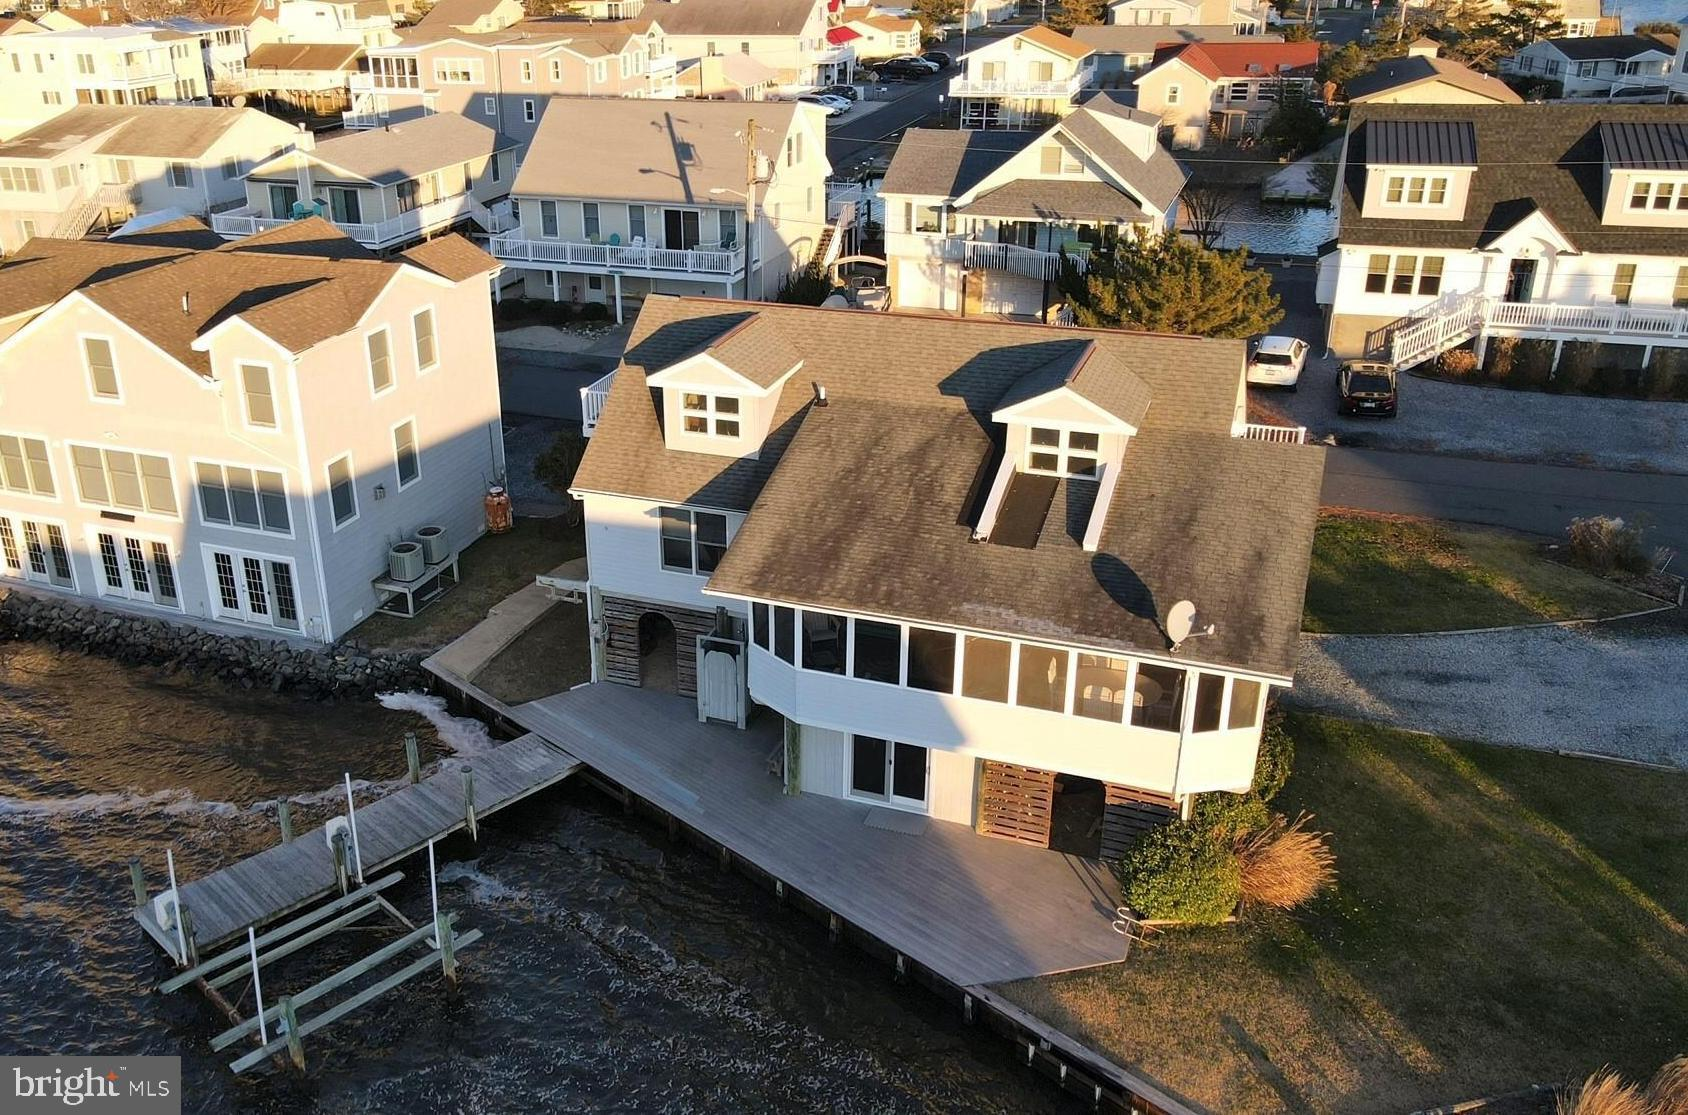 Incredible bay views from this direct waterfront home situated on 2 bulkheaded lots (502 and 504 Glenn Ave) and located within walking distance to the beach! This coastal home features an open floorplan with the living room flowing into the combined kitchen/dining area and opening to a large waterfront screened porch. Offering stunning bay views from almost every room in the home and a private boat ramp plus powered boat lift and dock that offers space for multiple watercrafts, this is a water lovers dream. Enjoy breathtaking sunsets over the bay from the screened porch, waterfront deck, or balcony. Located on the corner of a quiet non-thru street with easy access to the beautiful wide lifeguarded beach or the many restaurants, boutique shopping, mini golf and water slides that make Fenwick Island special.